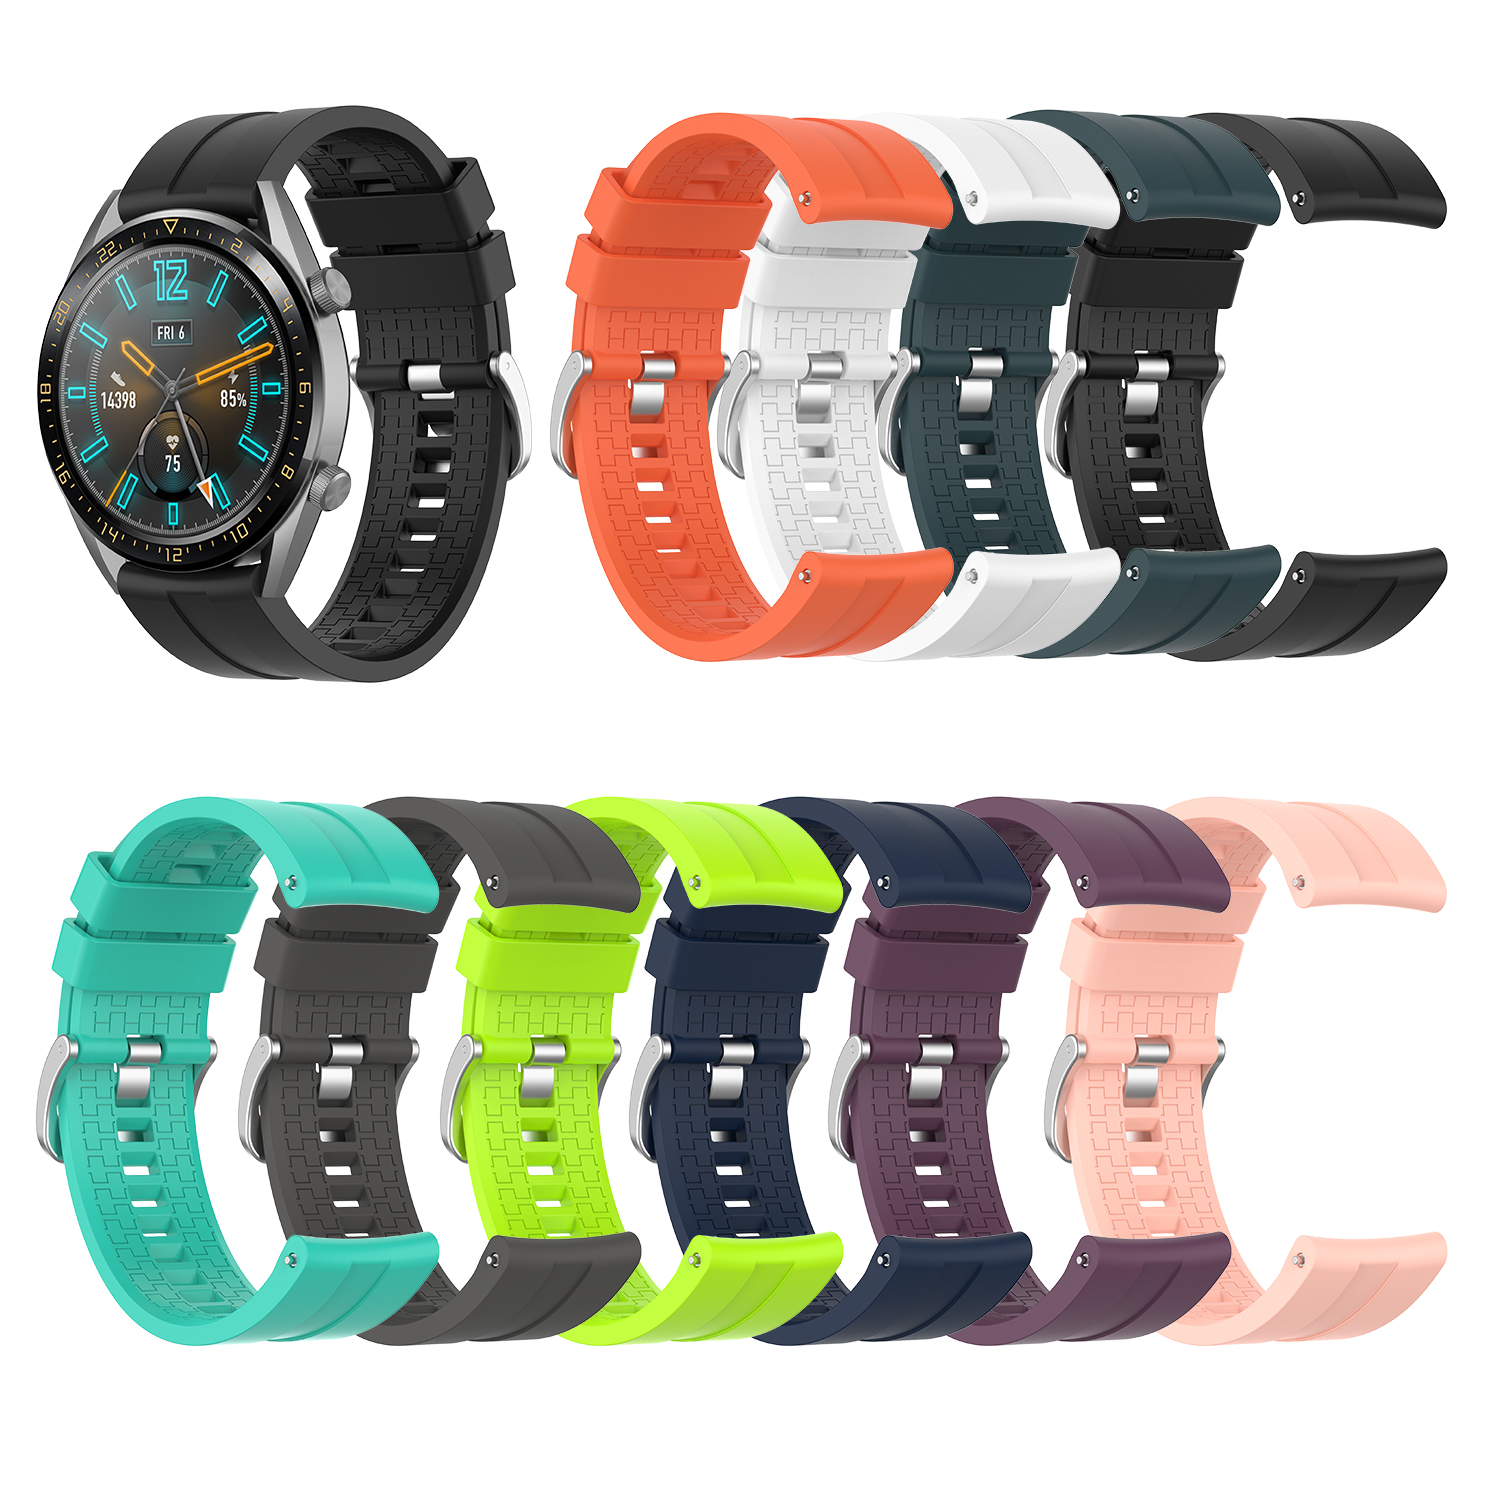 For Huawei Watch GT 46mm Official Silicone Strap Universal Display Width 22MM Watch Smartwatch Watchband Replacement Accessories